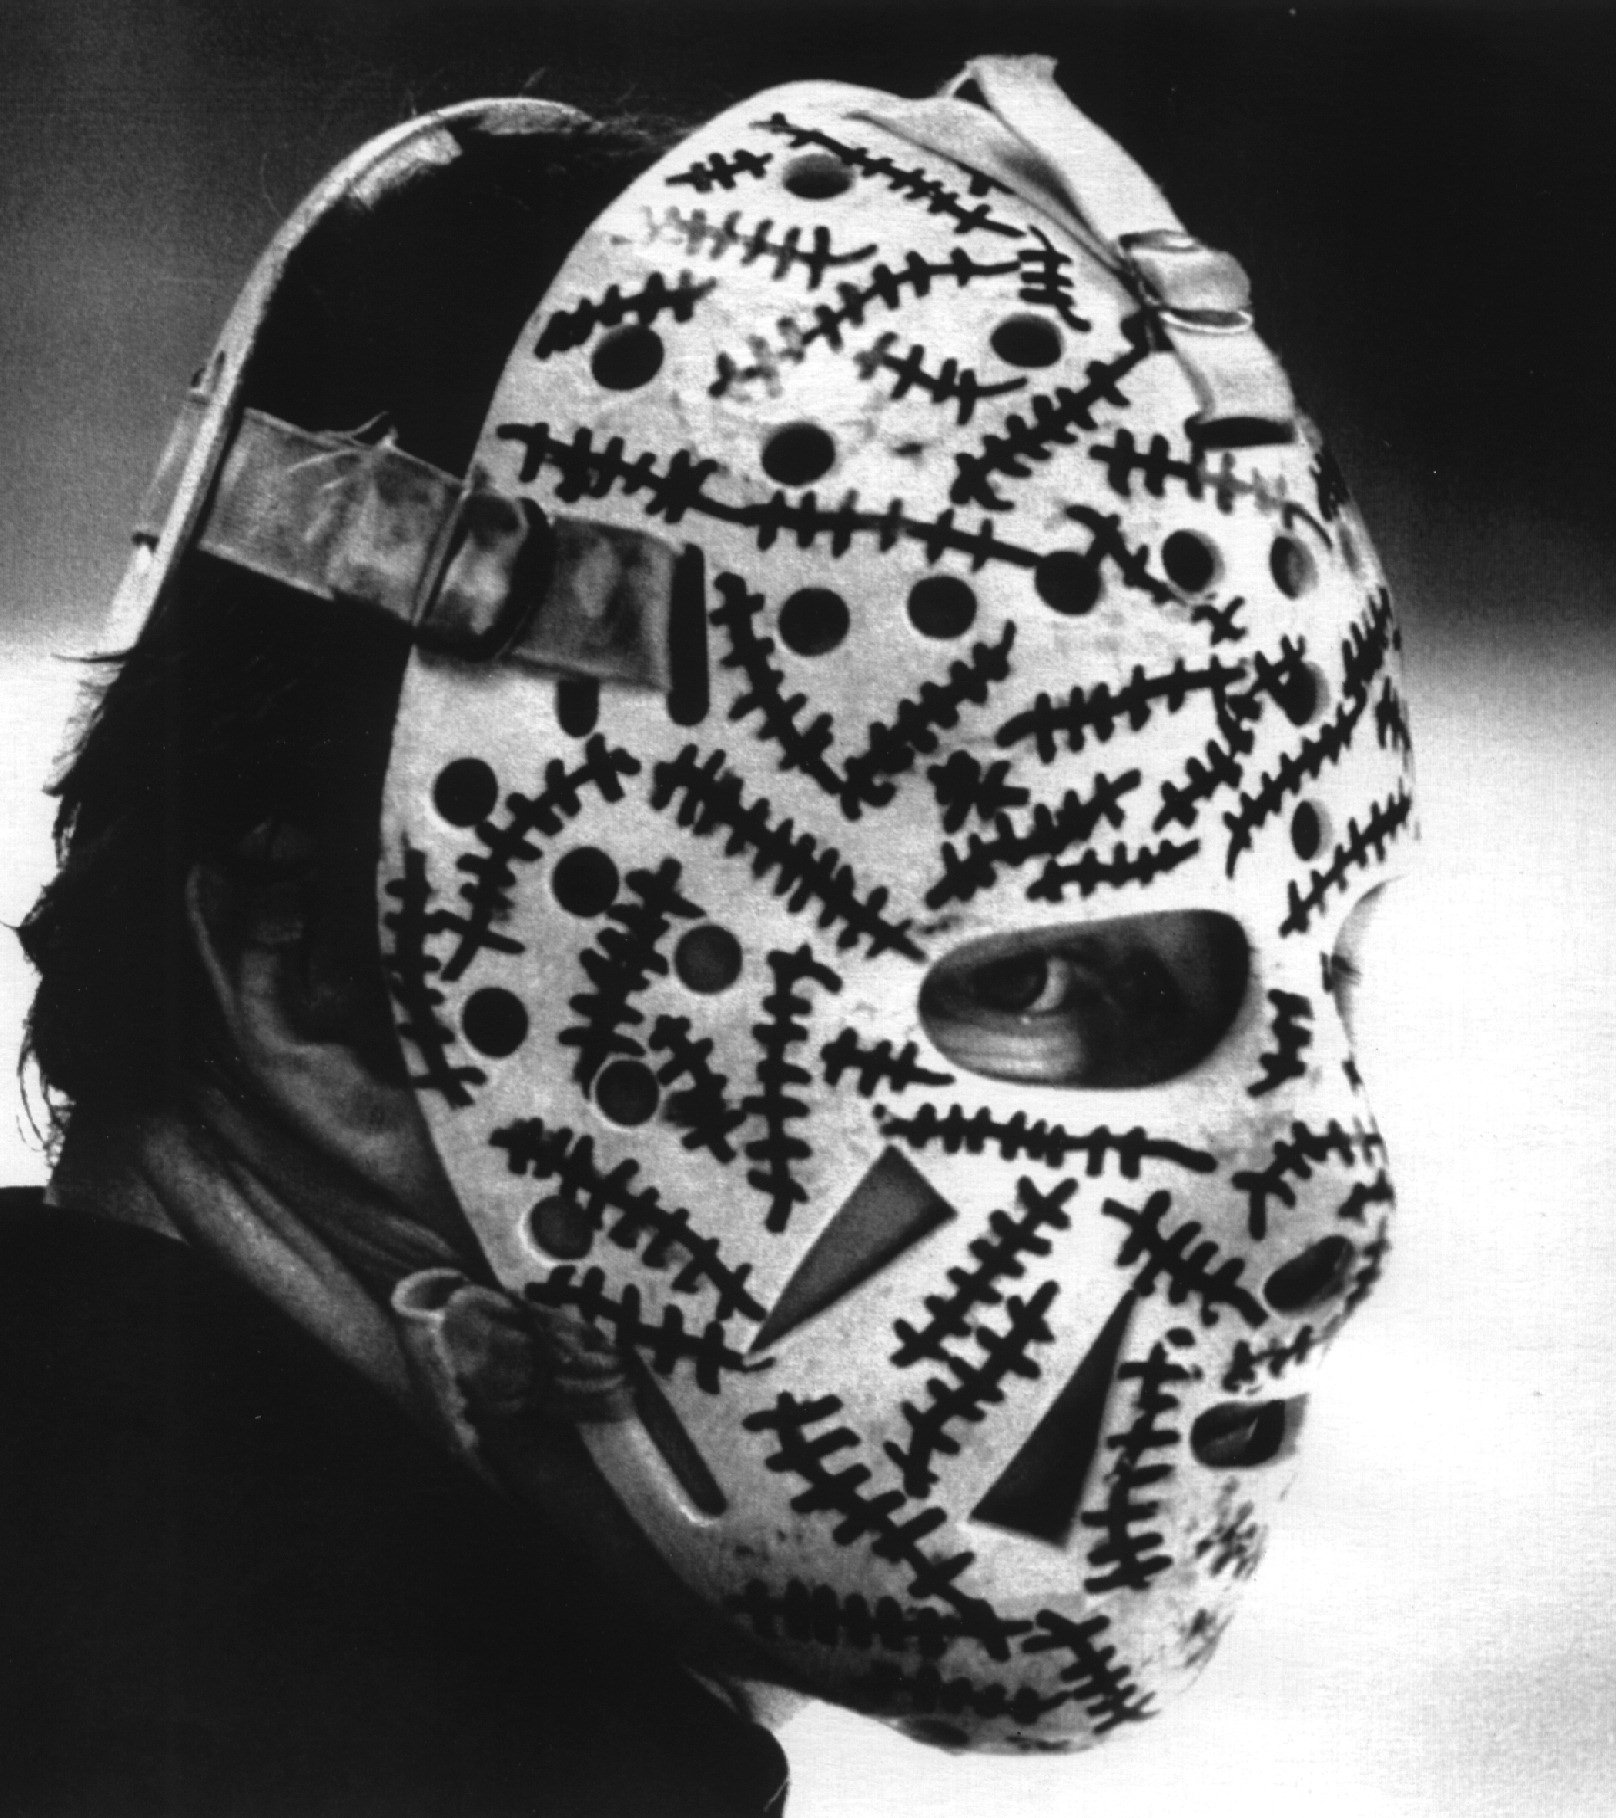 Loved That Mask!